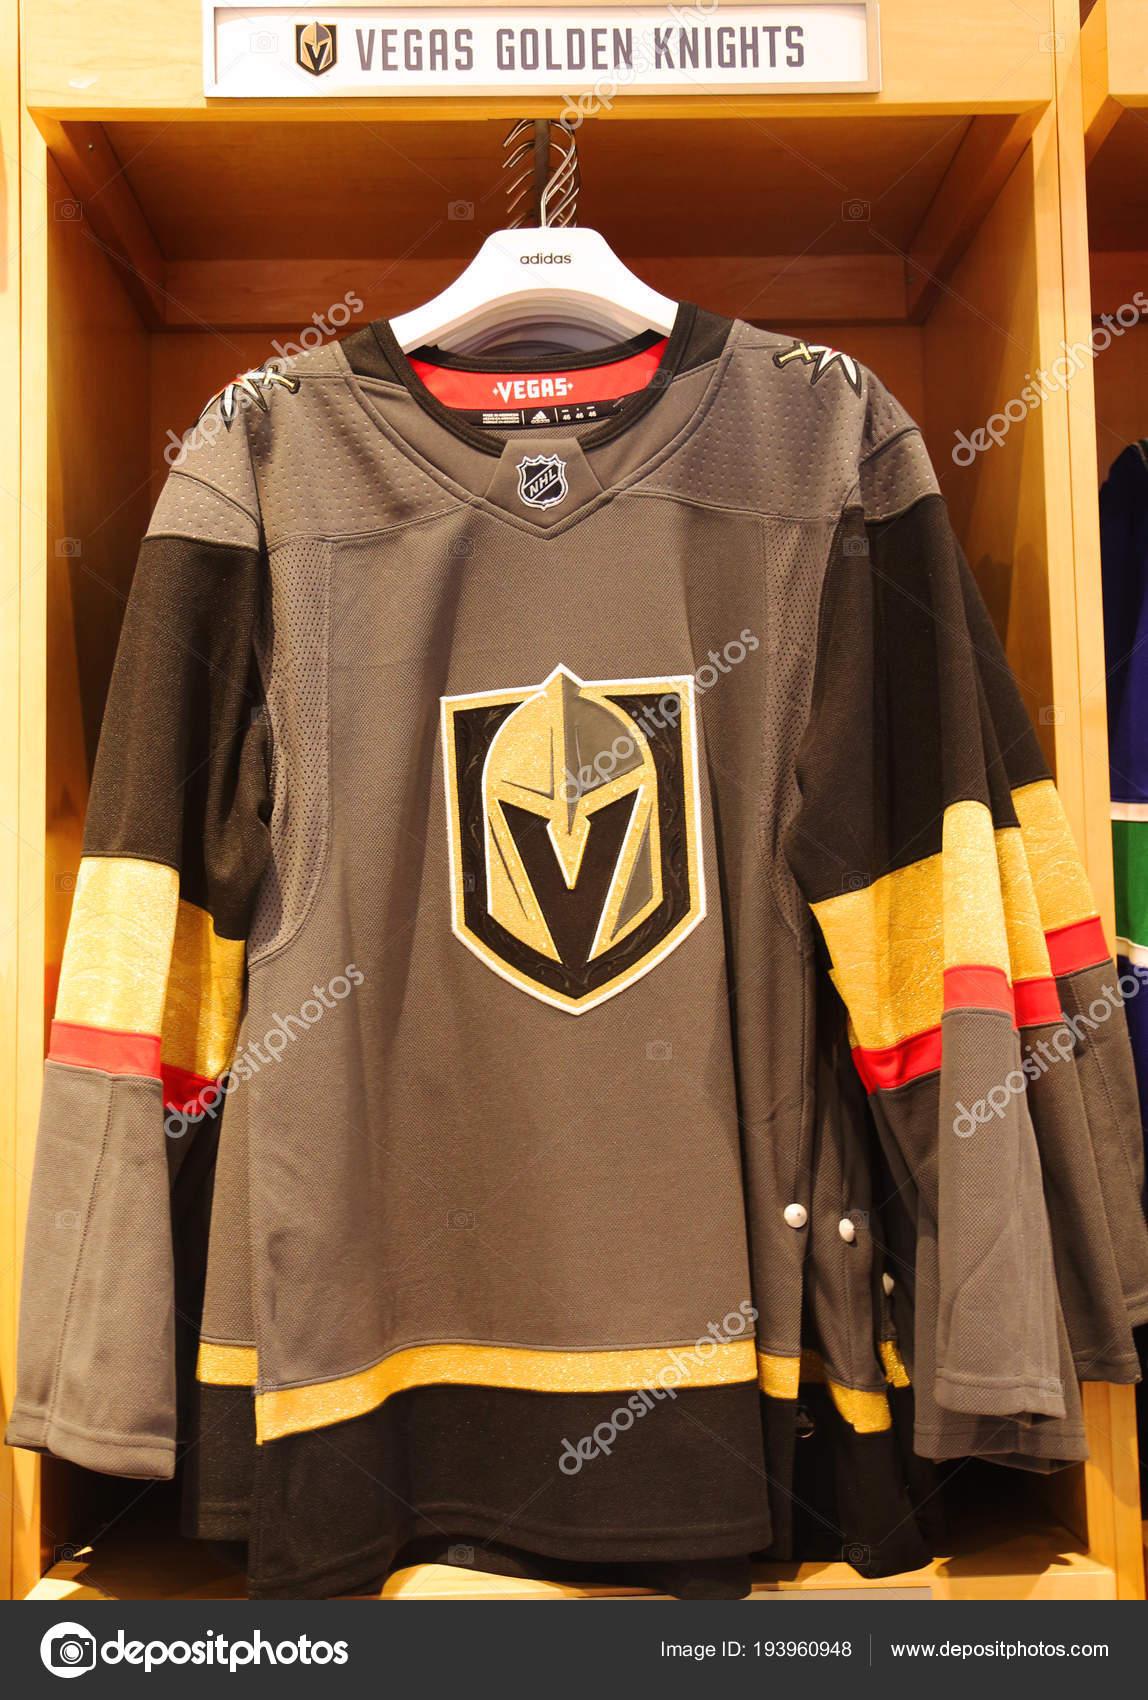 low priced 790e7 5d37e New York April 2018 Vegas Golden Knights Jersey Display Nhl ...